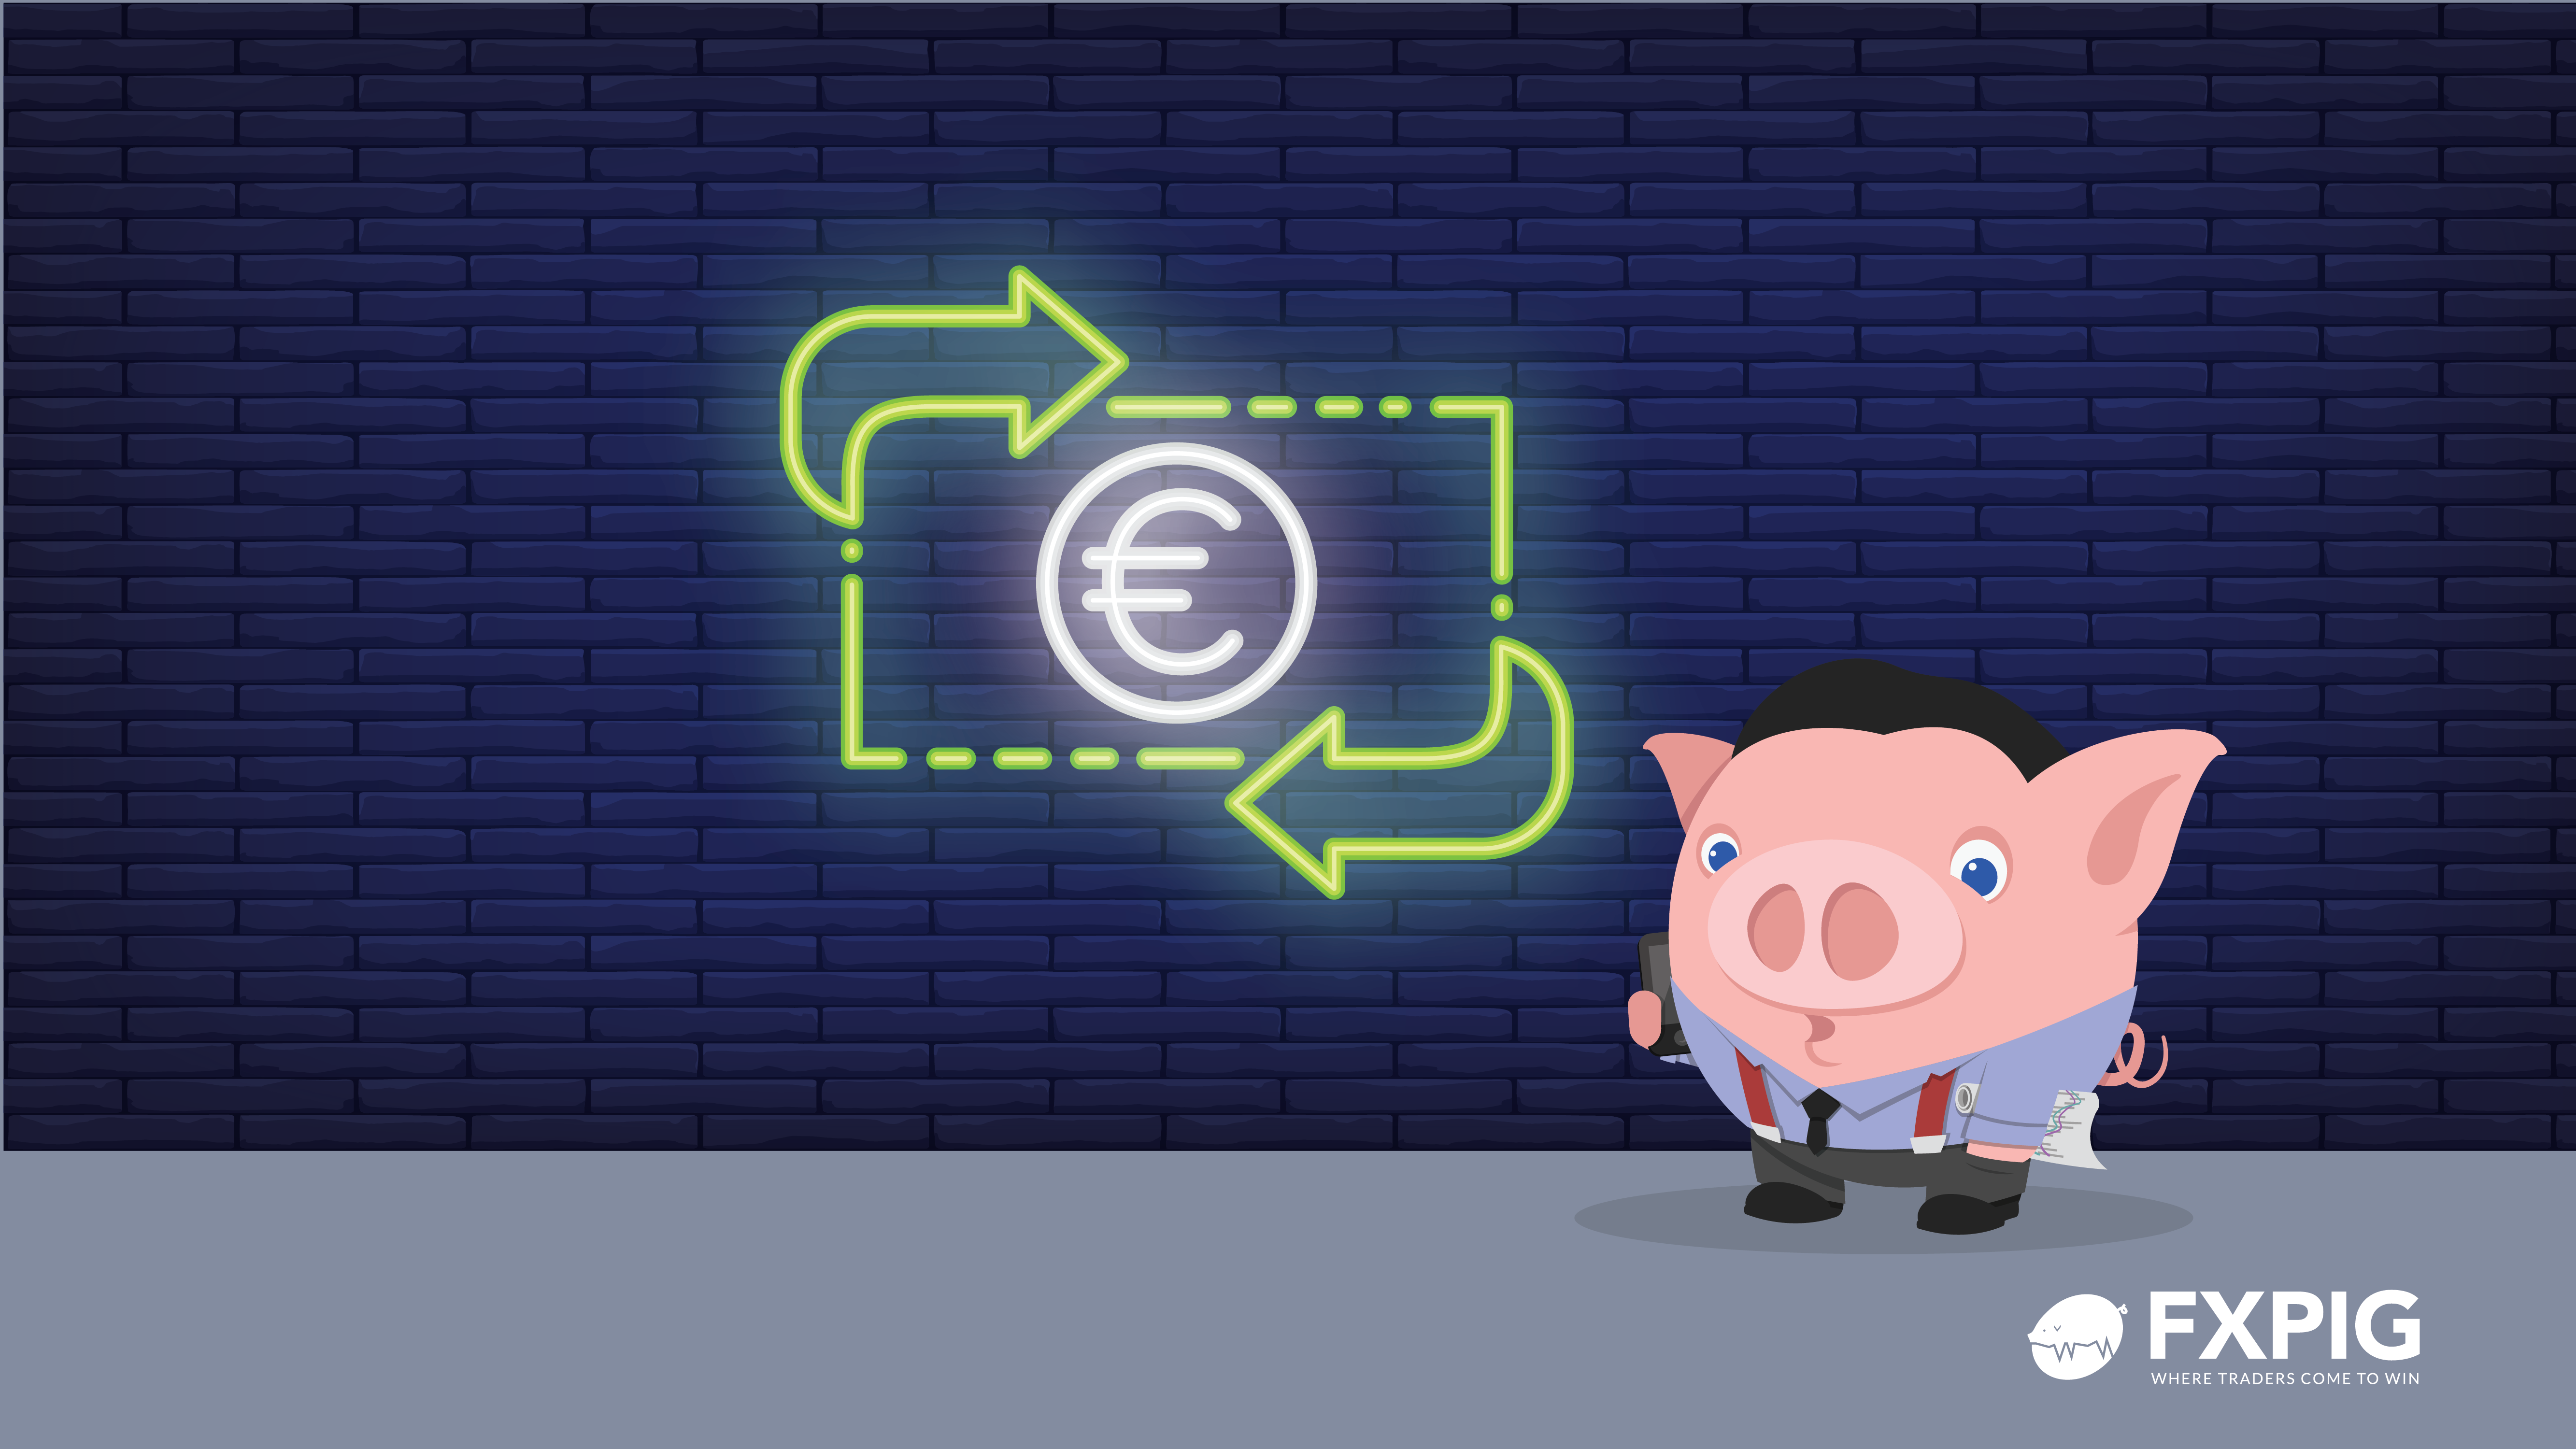 EUR_steady_FOREX-FXPIG